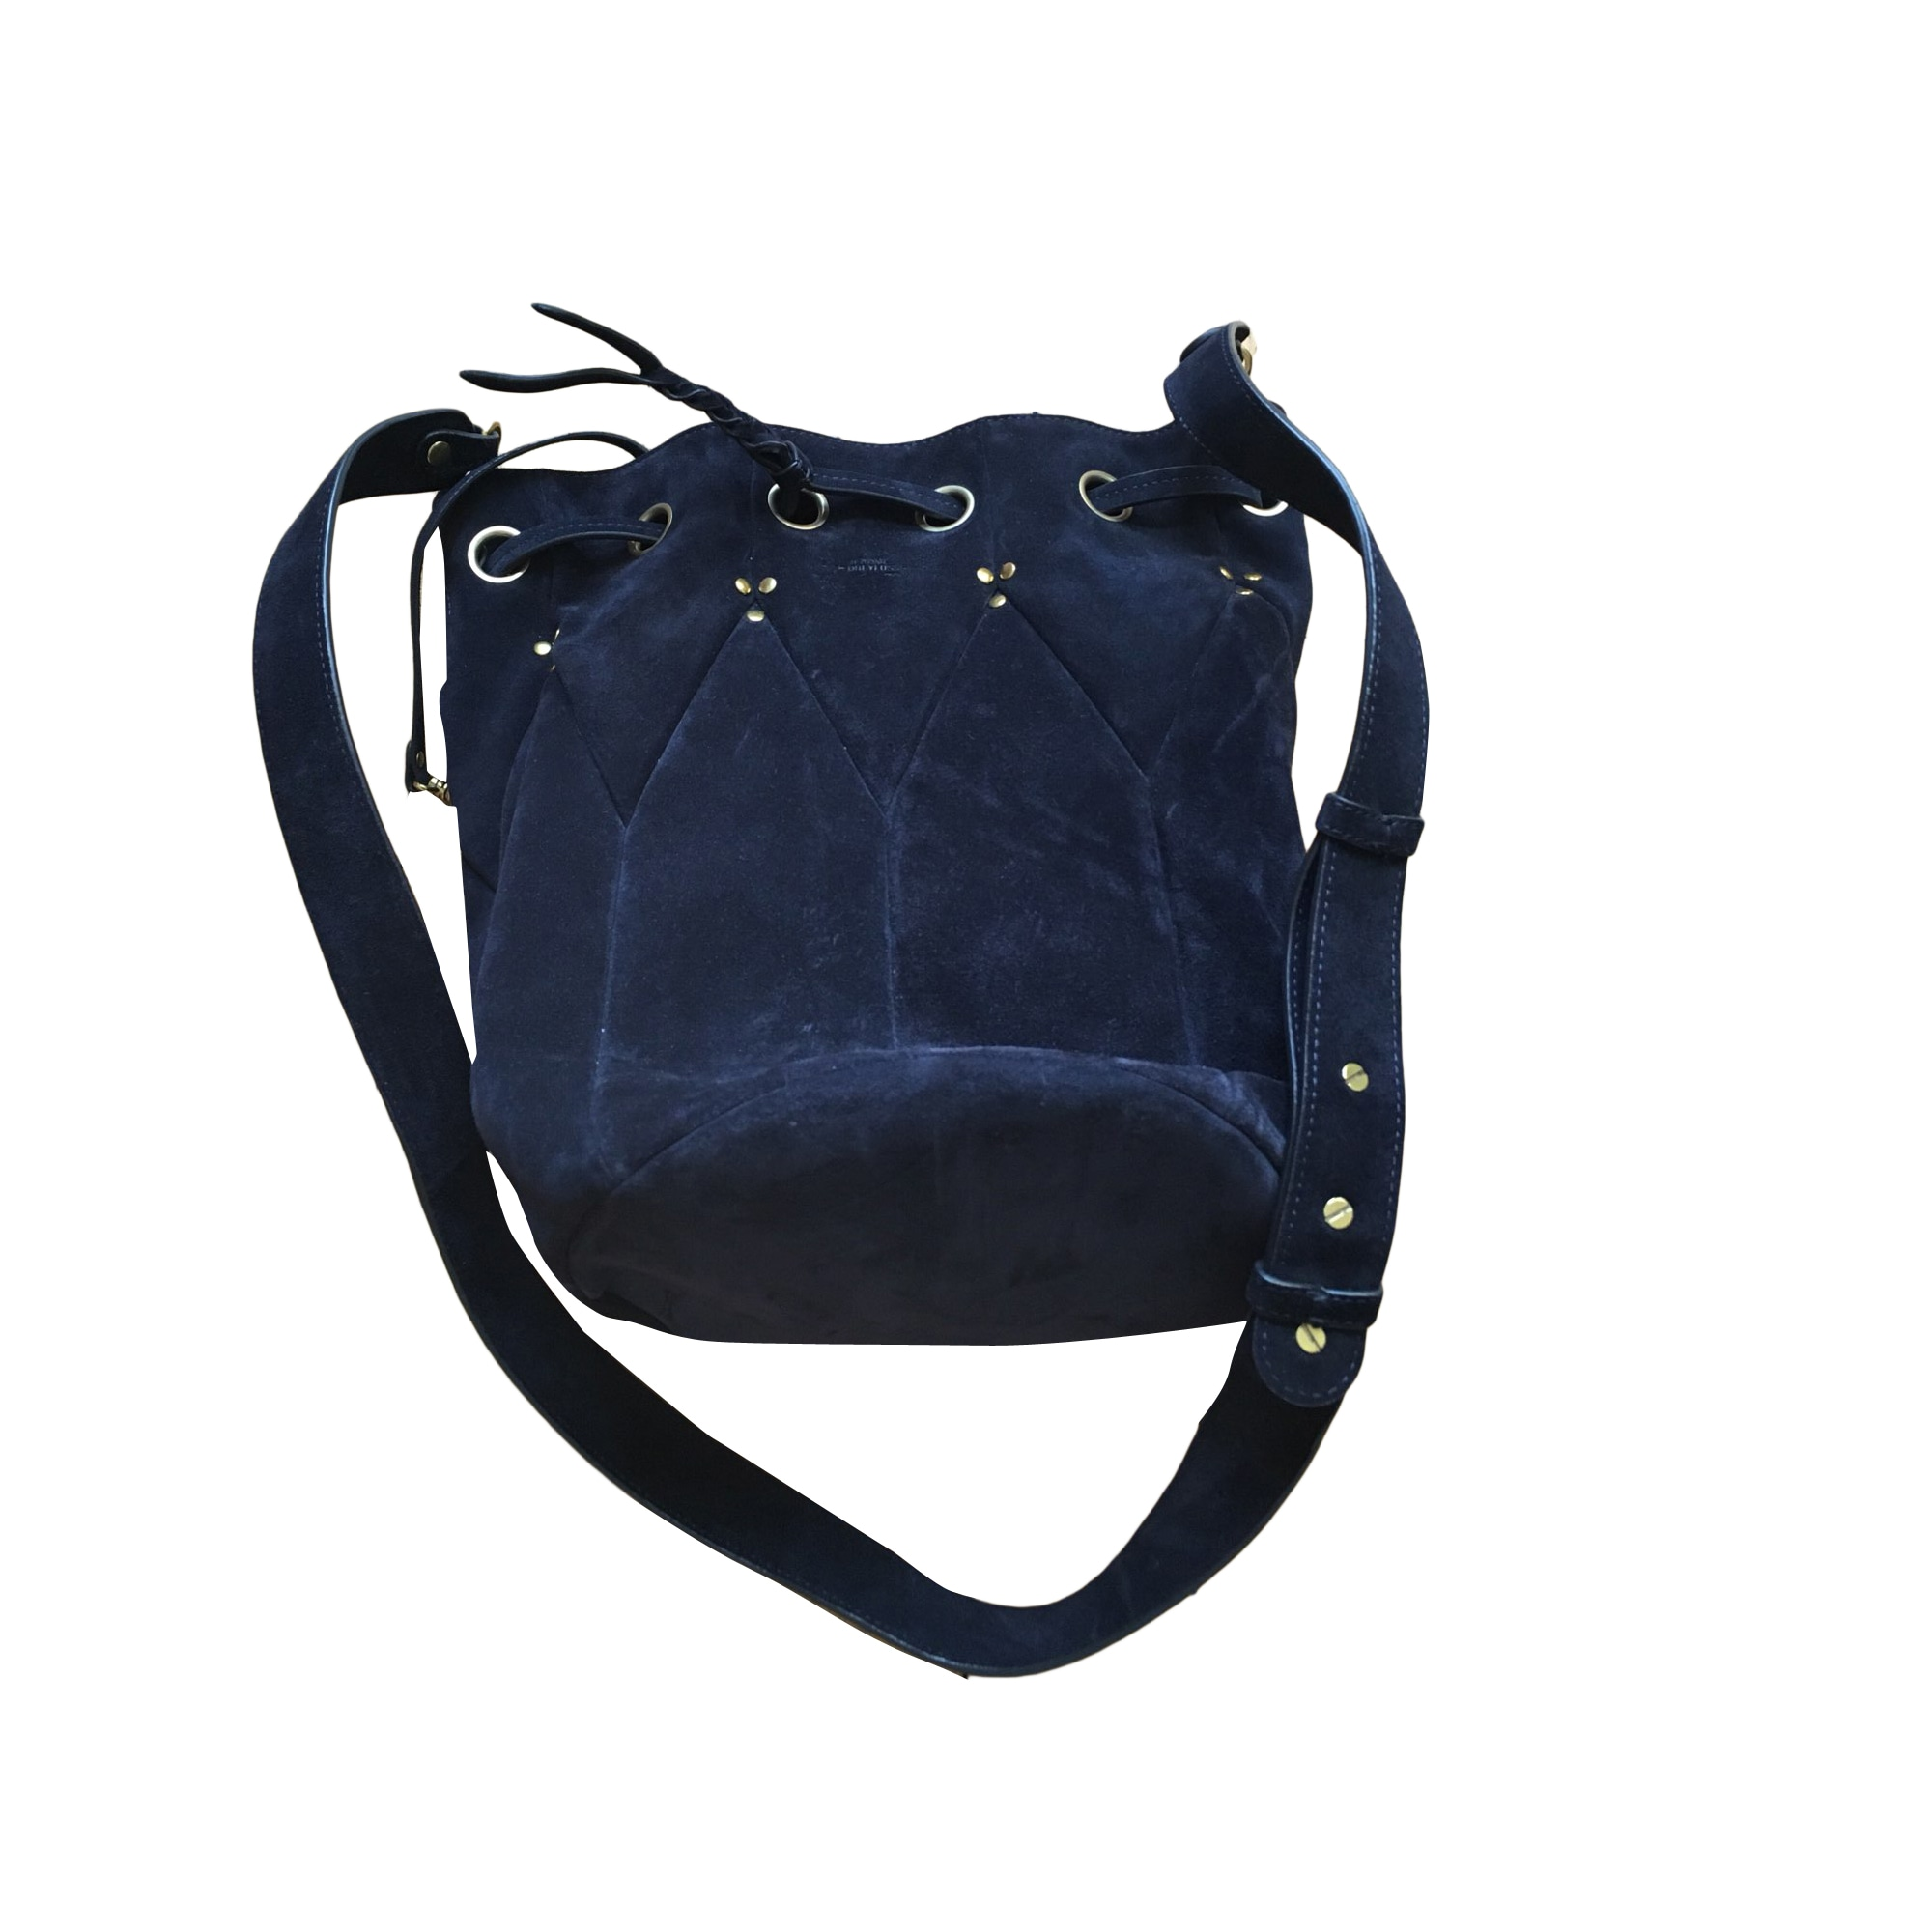 Leather Shoulder Bag JEROME DREYFUSS Blue, navy, turquoise